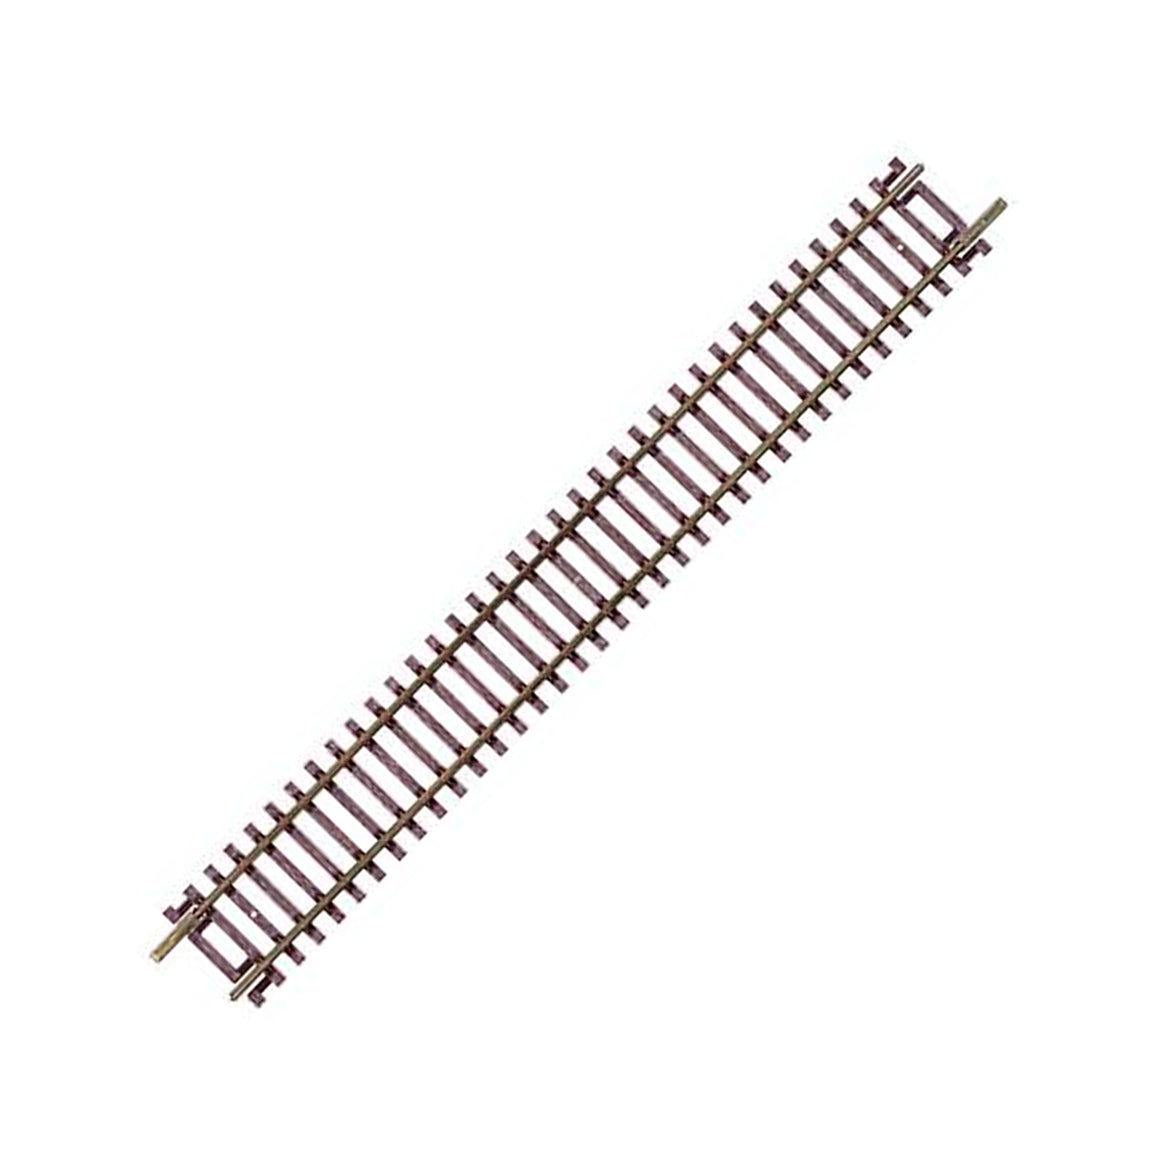 HO Scale: Code 83 Snap Track - Straight Pieces - Various Lengths